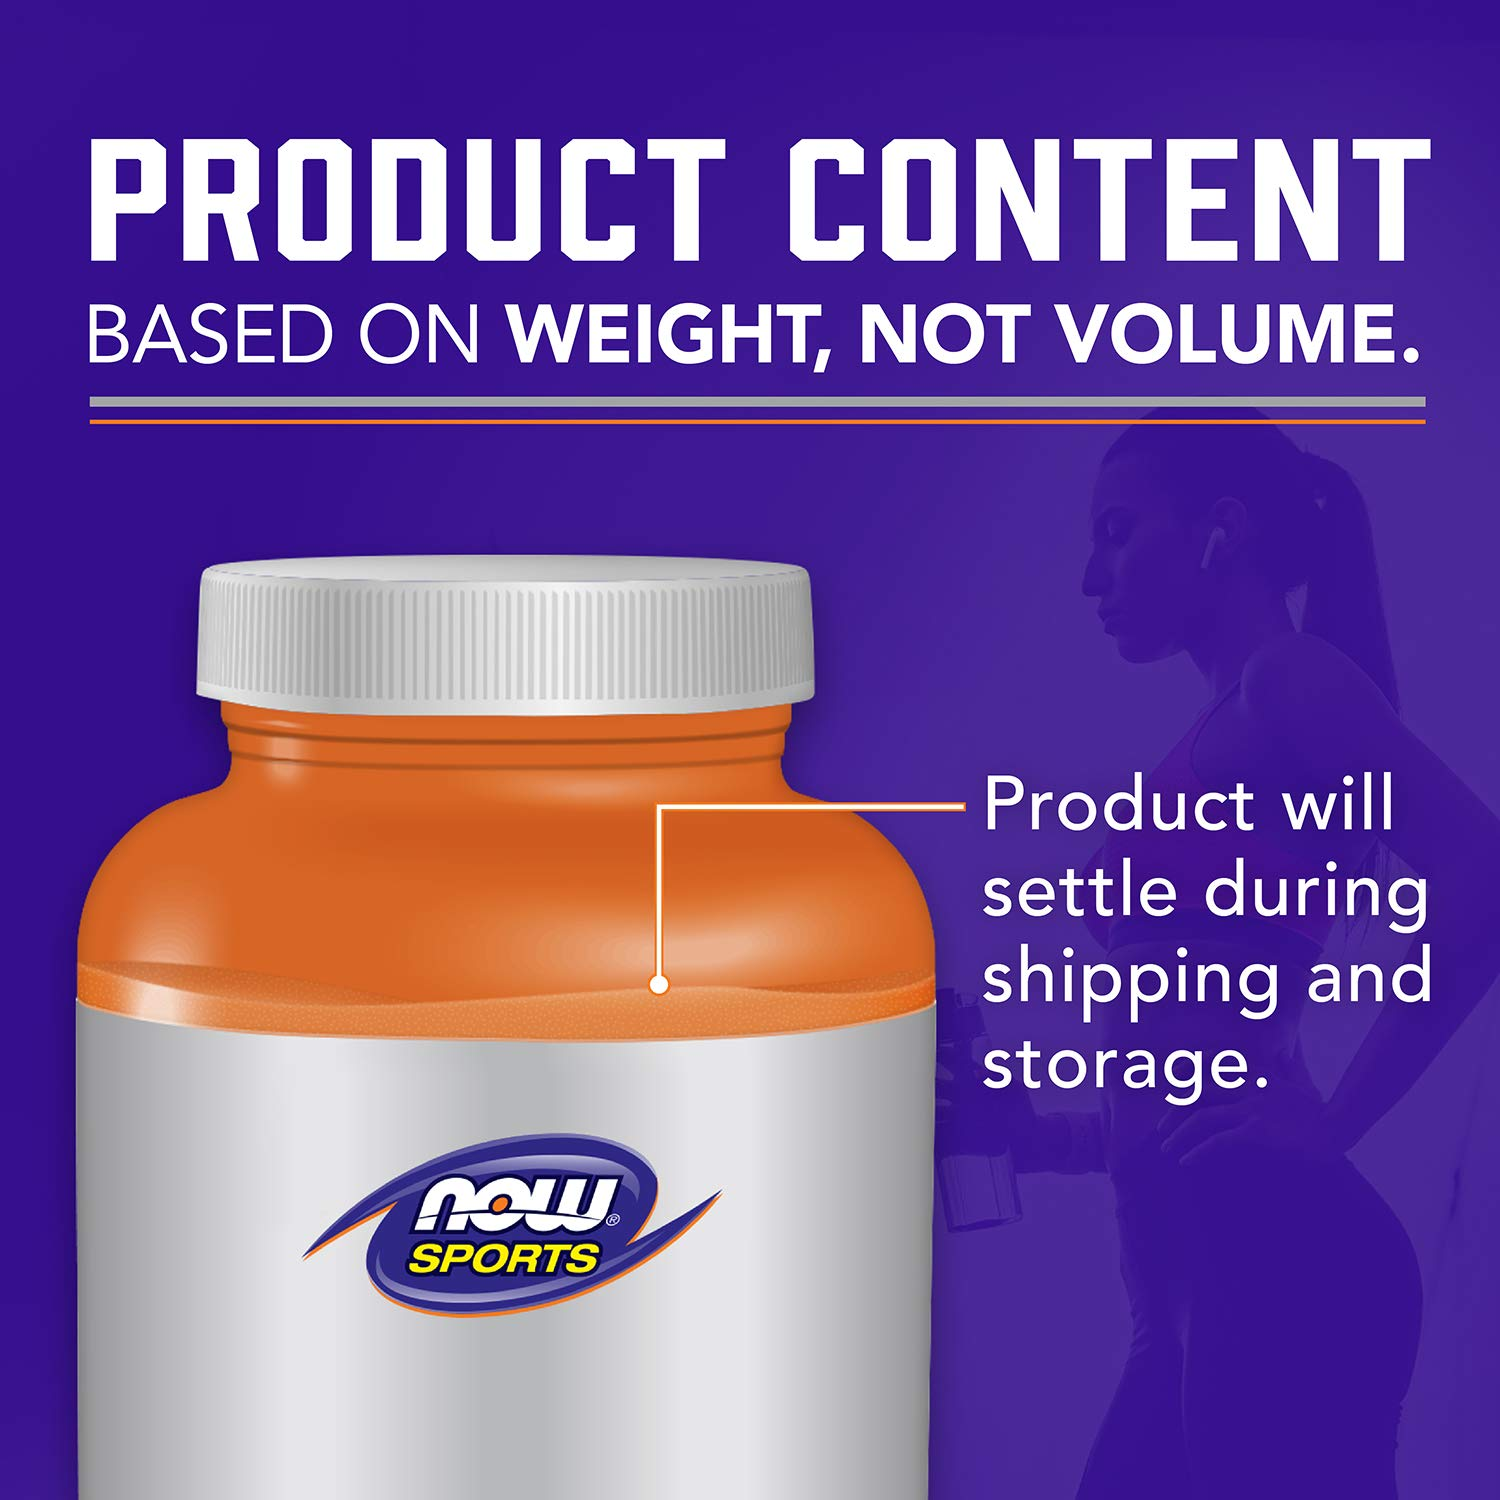 NOW Sports Nutrition, Soy Protein Isolate Powder, Unflavored, 2-Pound by Now Sports (Image #8)